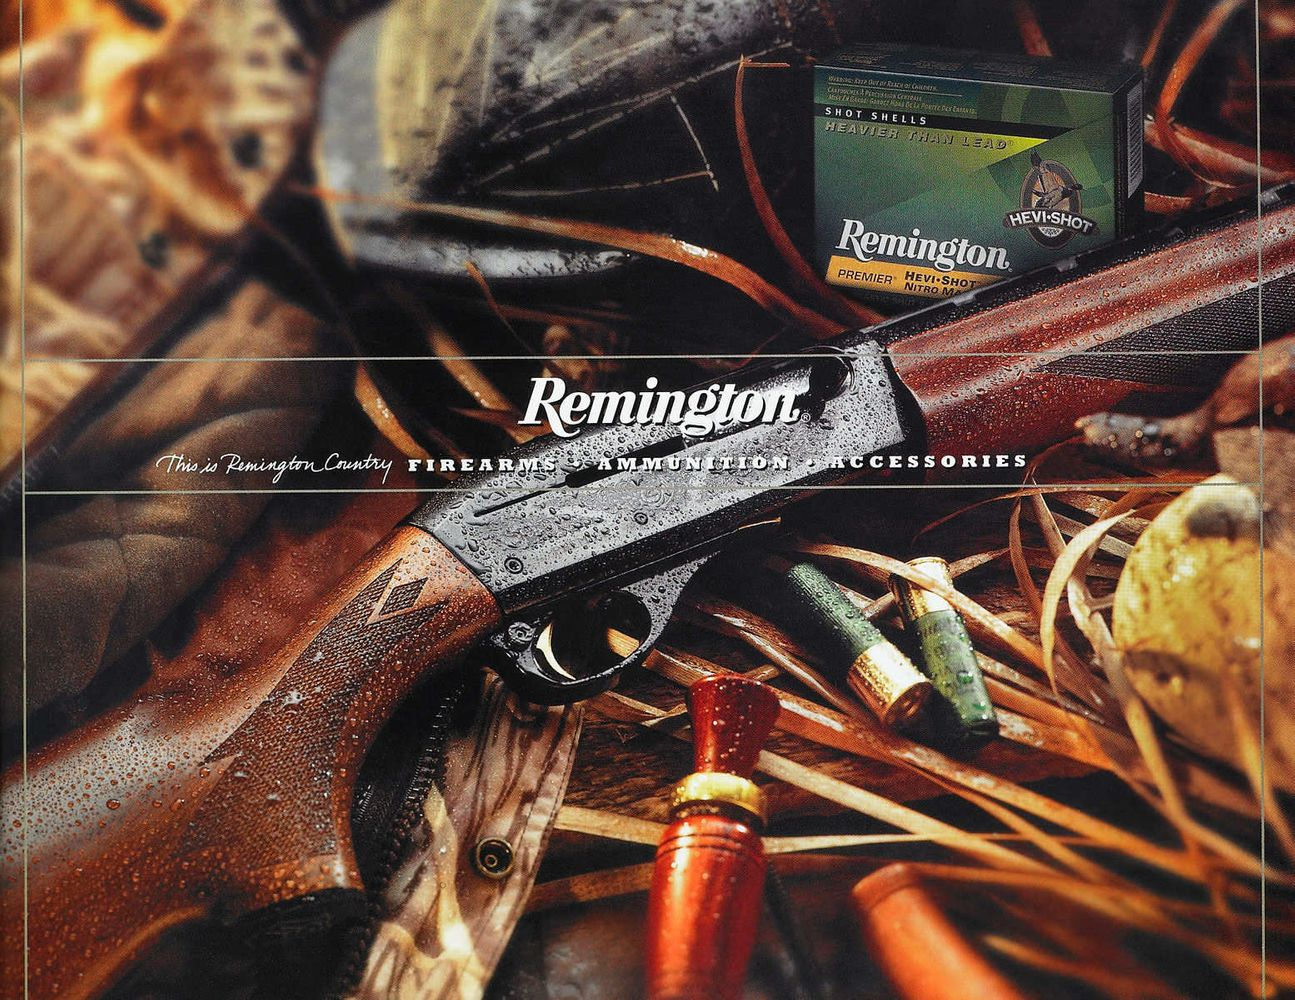 1_0_167_1remington_cover_052695_w.jpg